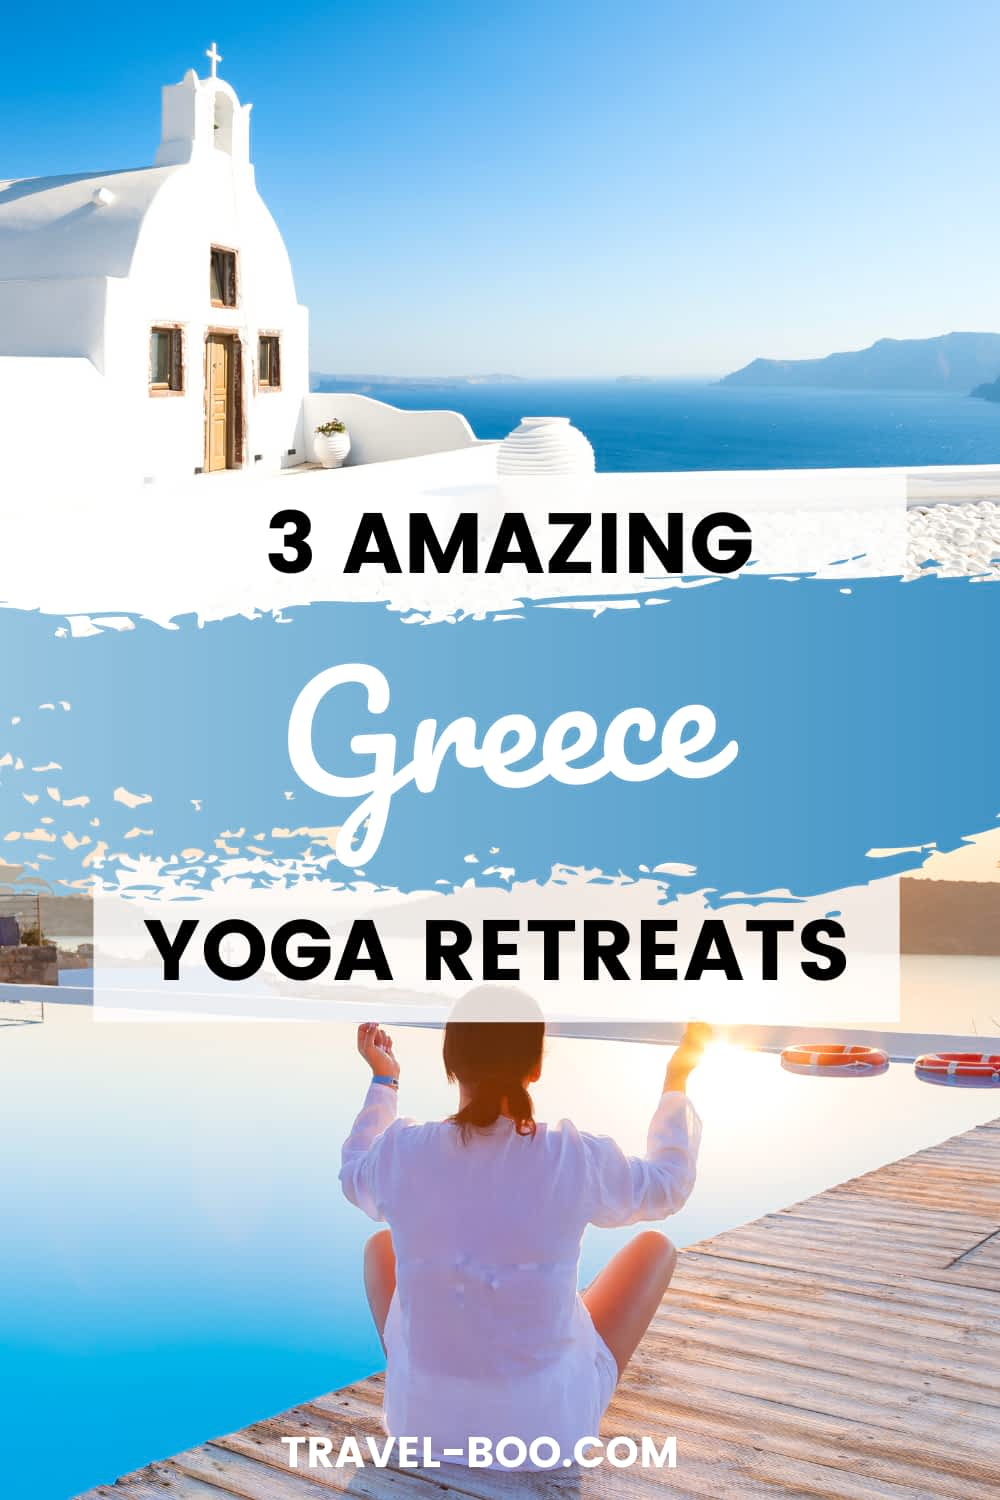 Wanting to book a yoga retreat in Greece? Check out these 3 amazing Greek yoga experiences! Greece Travel, Greece Travel Guide, Greece Travel Vacation, Where to go in Greece, Greece Travel Islands, Greece Travel Tips, Kos Greece, Corfu Greece. #greecetravel #greecetravelislands #greecetravelguide